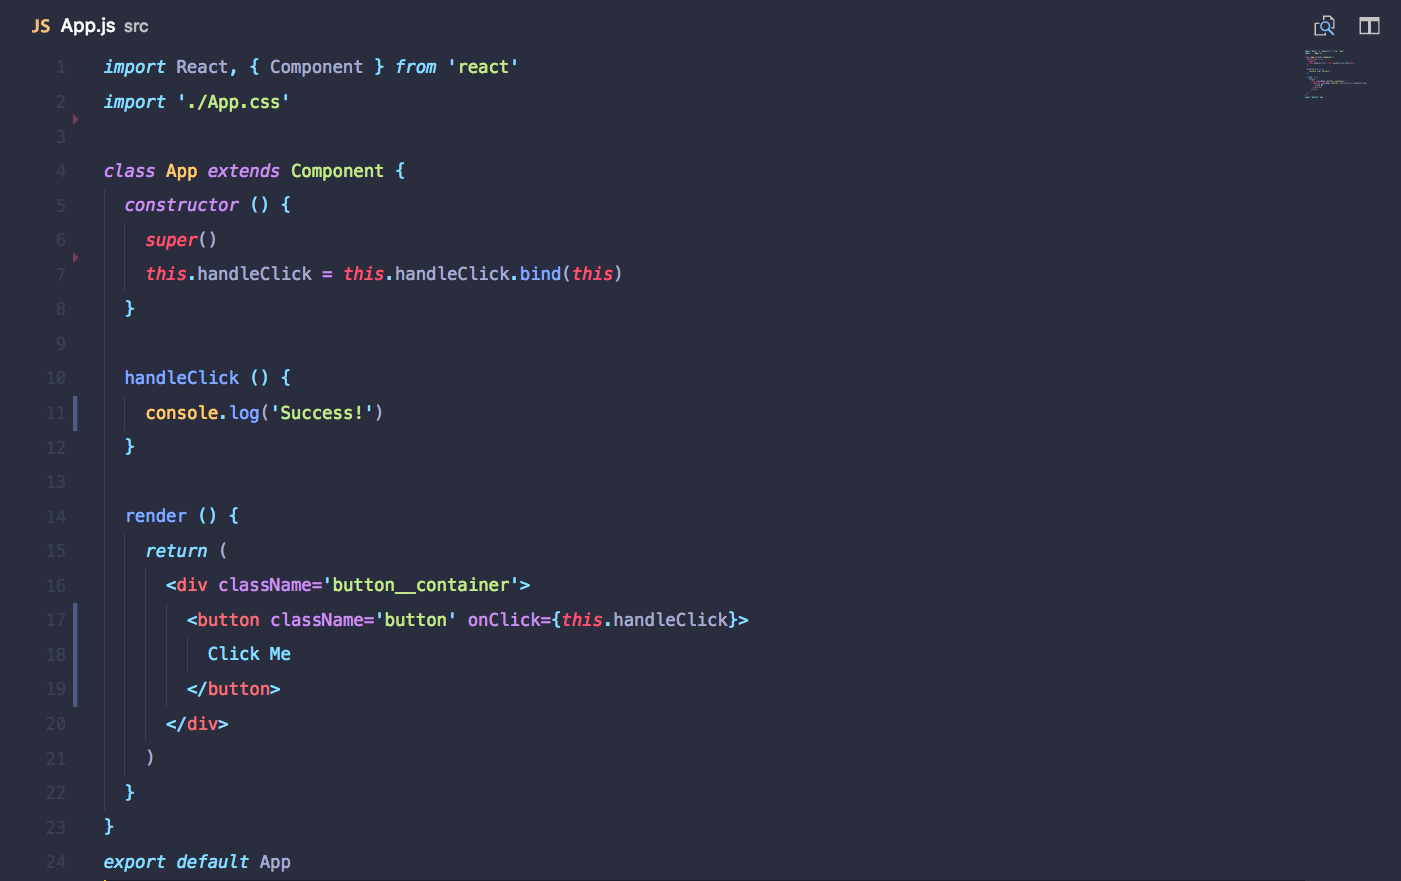 /tutorial-how-to-make-http-requests-in-react-part-2-4cfdba3ec65 feature image